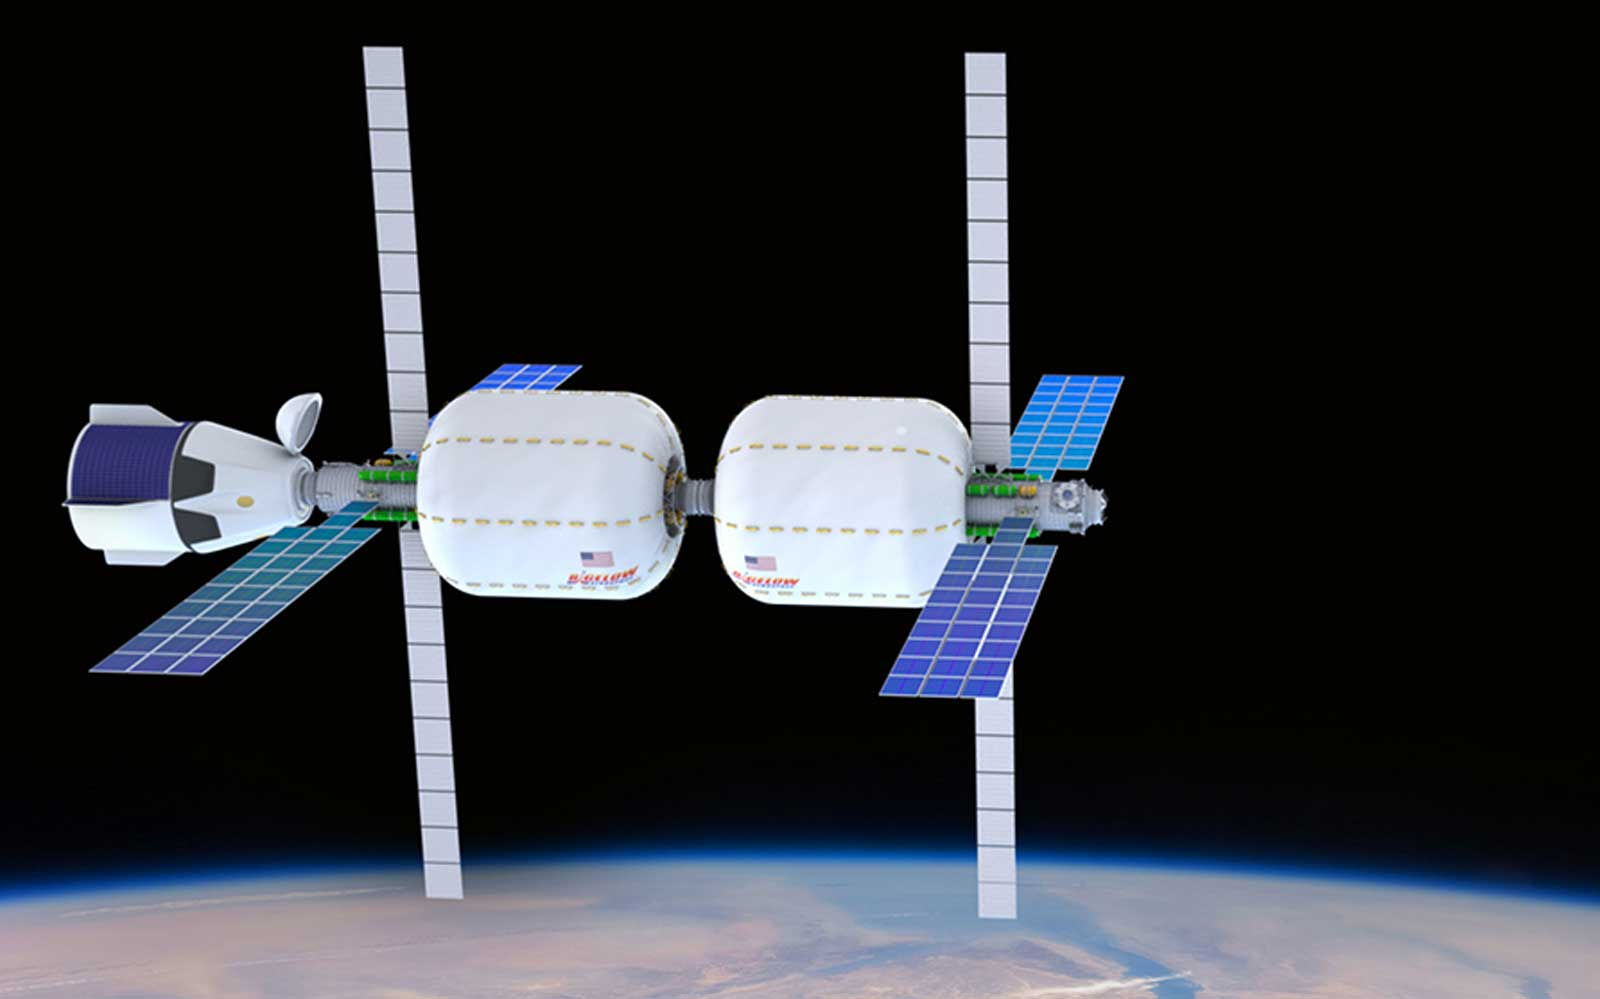 Hotel Pods That Float in Space Could Be Open by 2021